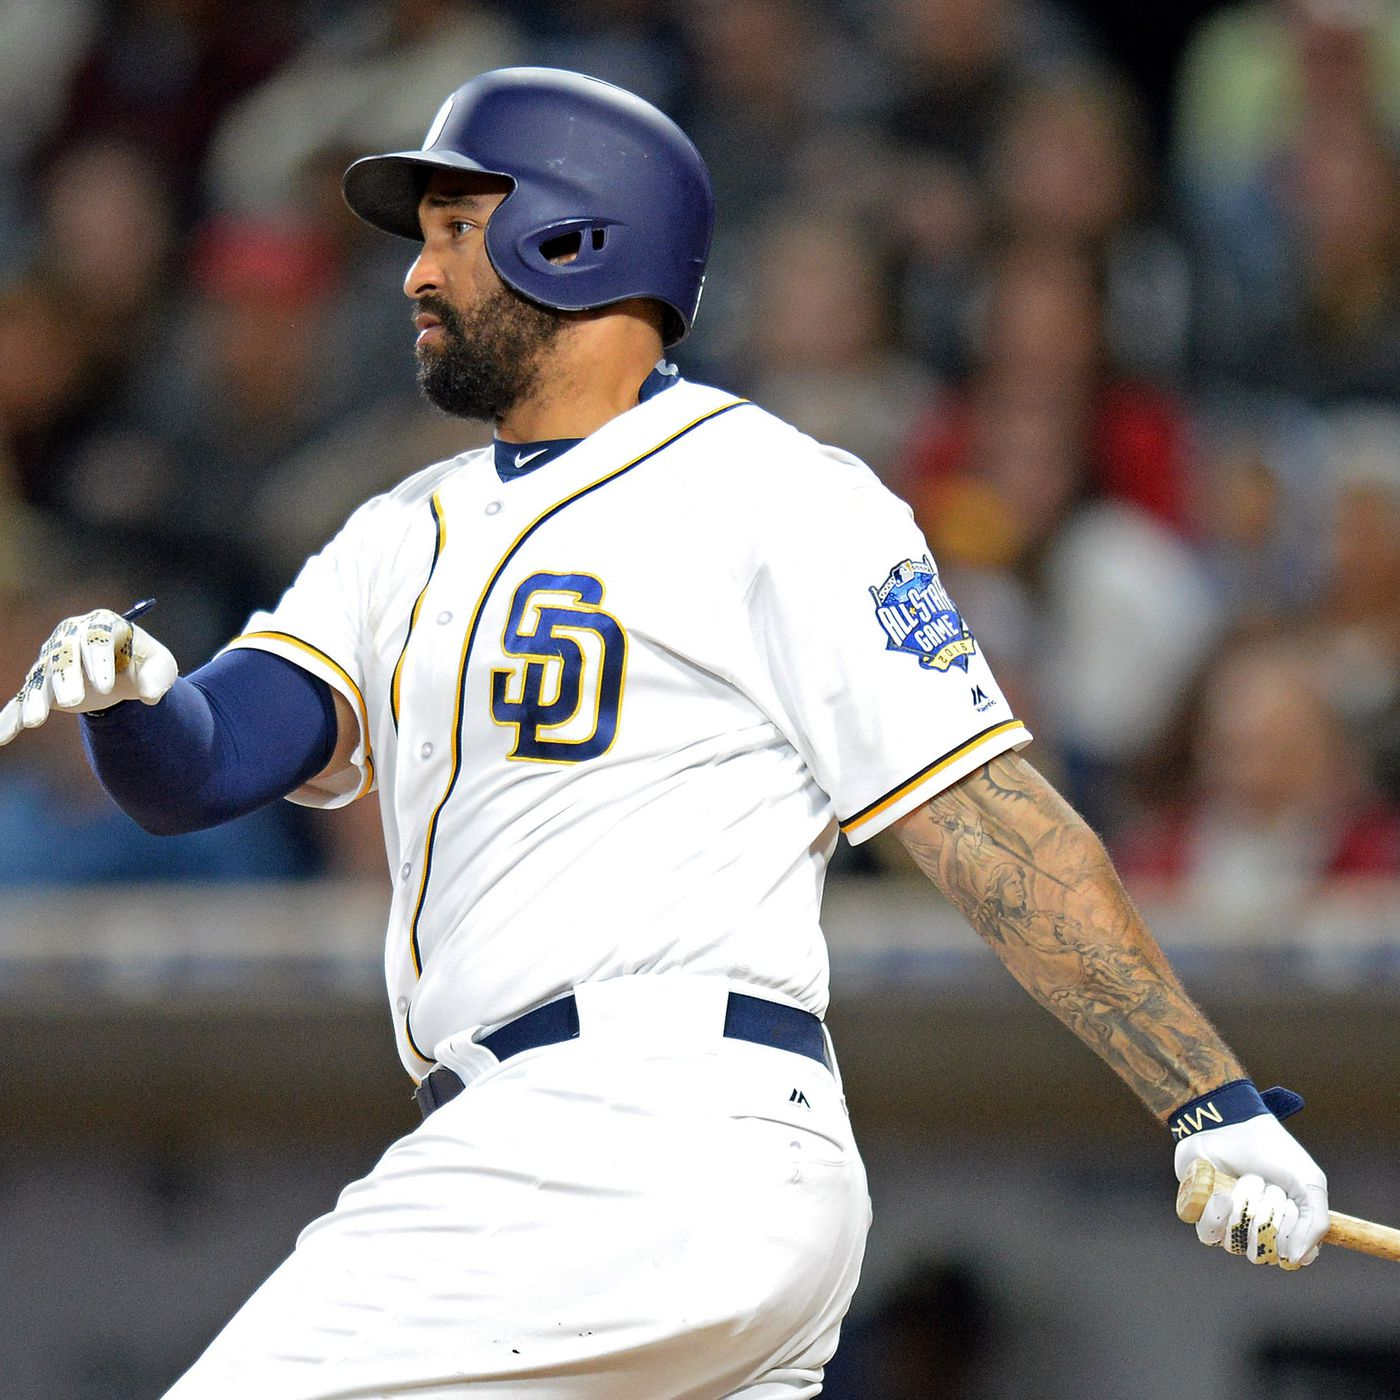 half off c6ef6 37238 Braves acquire Matt Kemp from Padres in bad contract swap ...